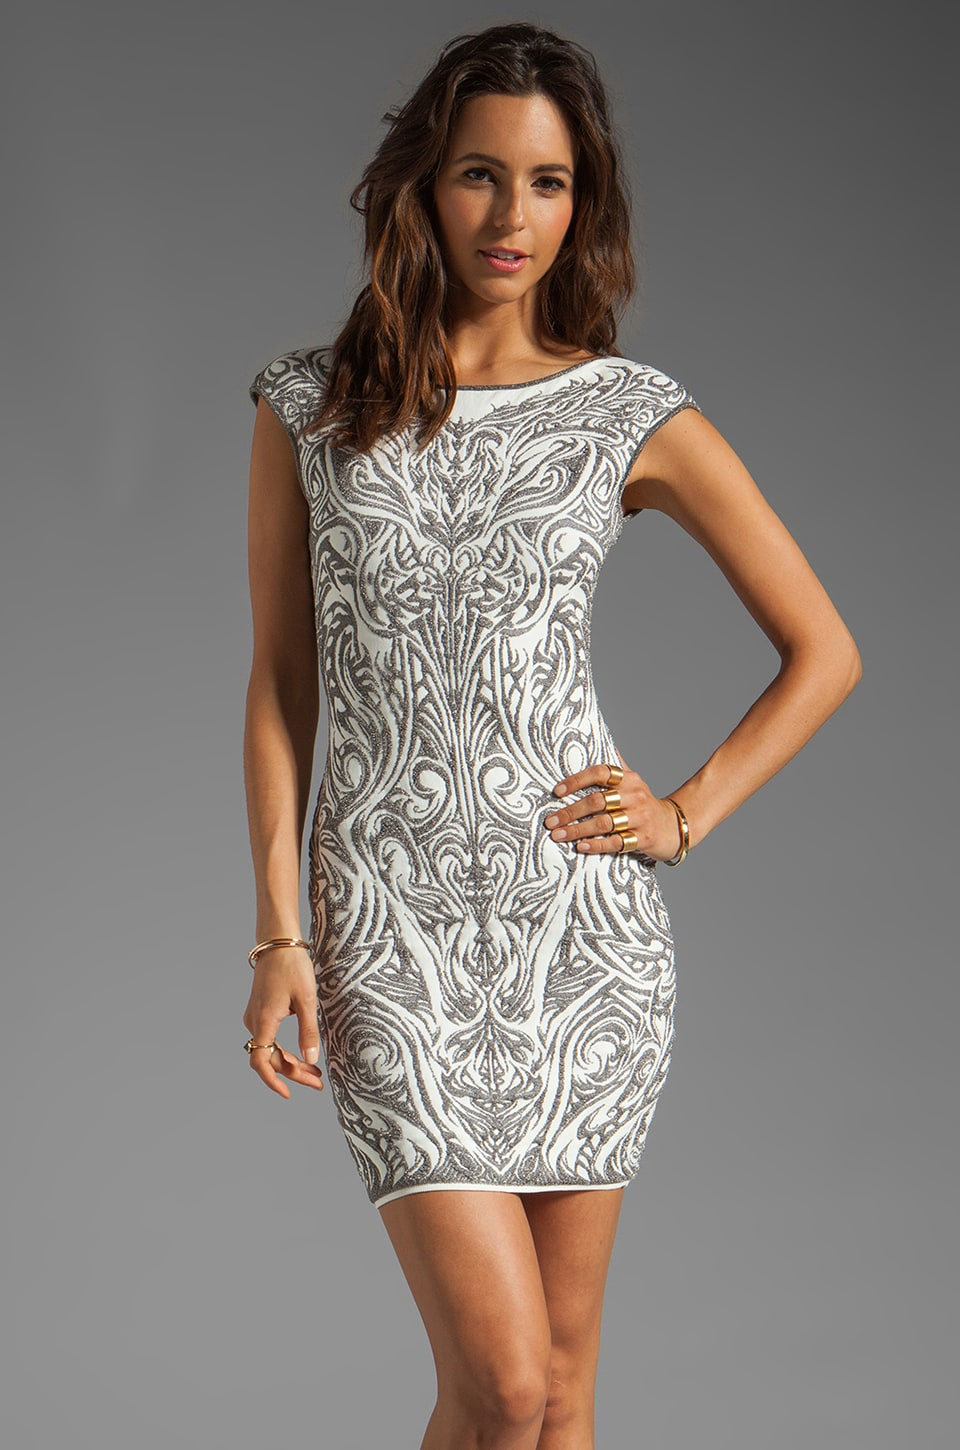 RVN Phoenix Embroidery Jacquard Dress in Sliver Lurex/White